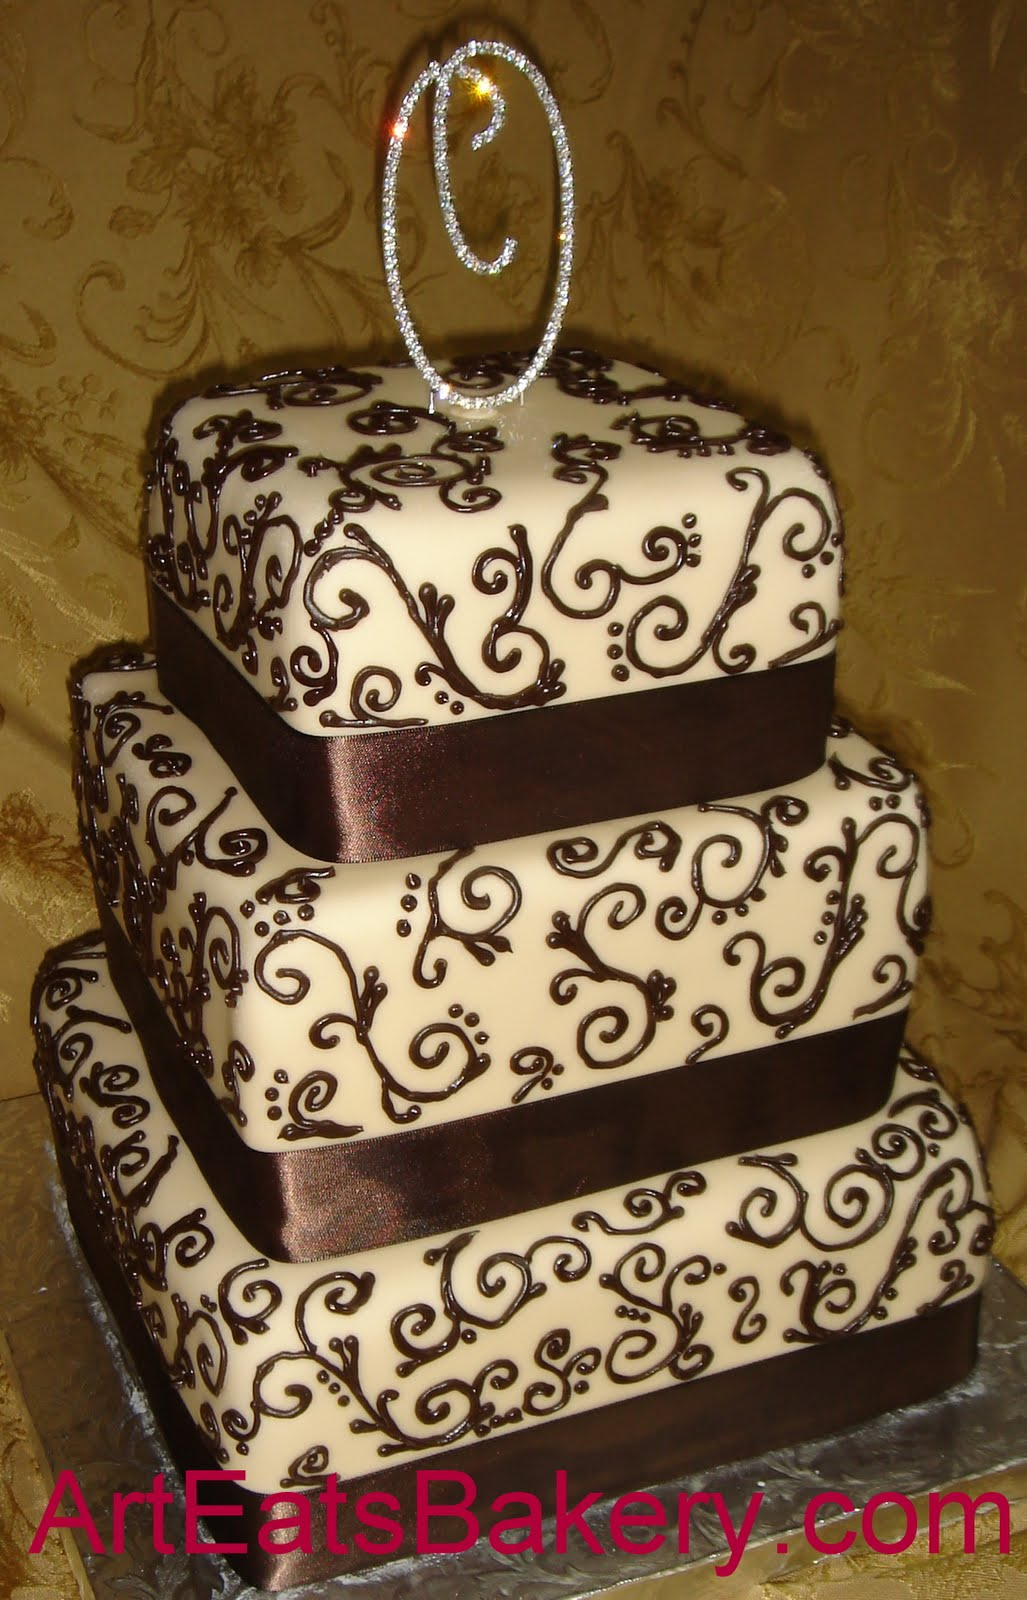 Bold custom unique cake wedding cake designs arteatsbakery